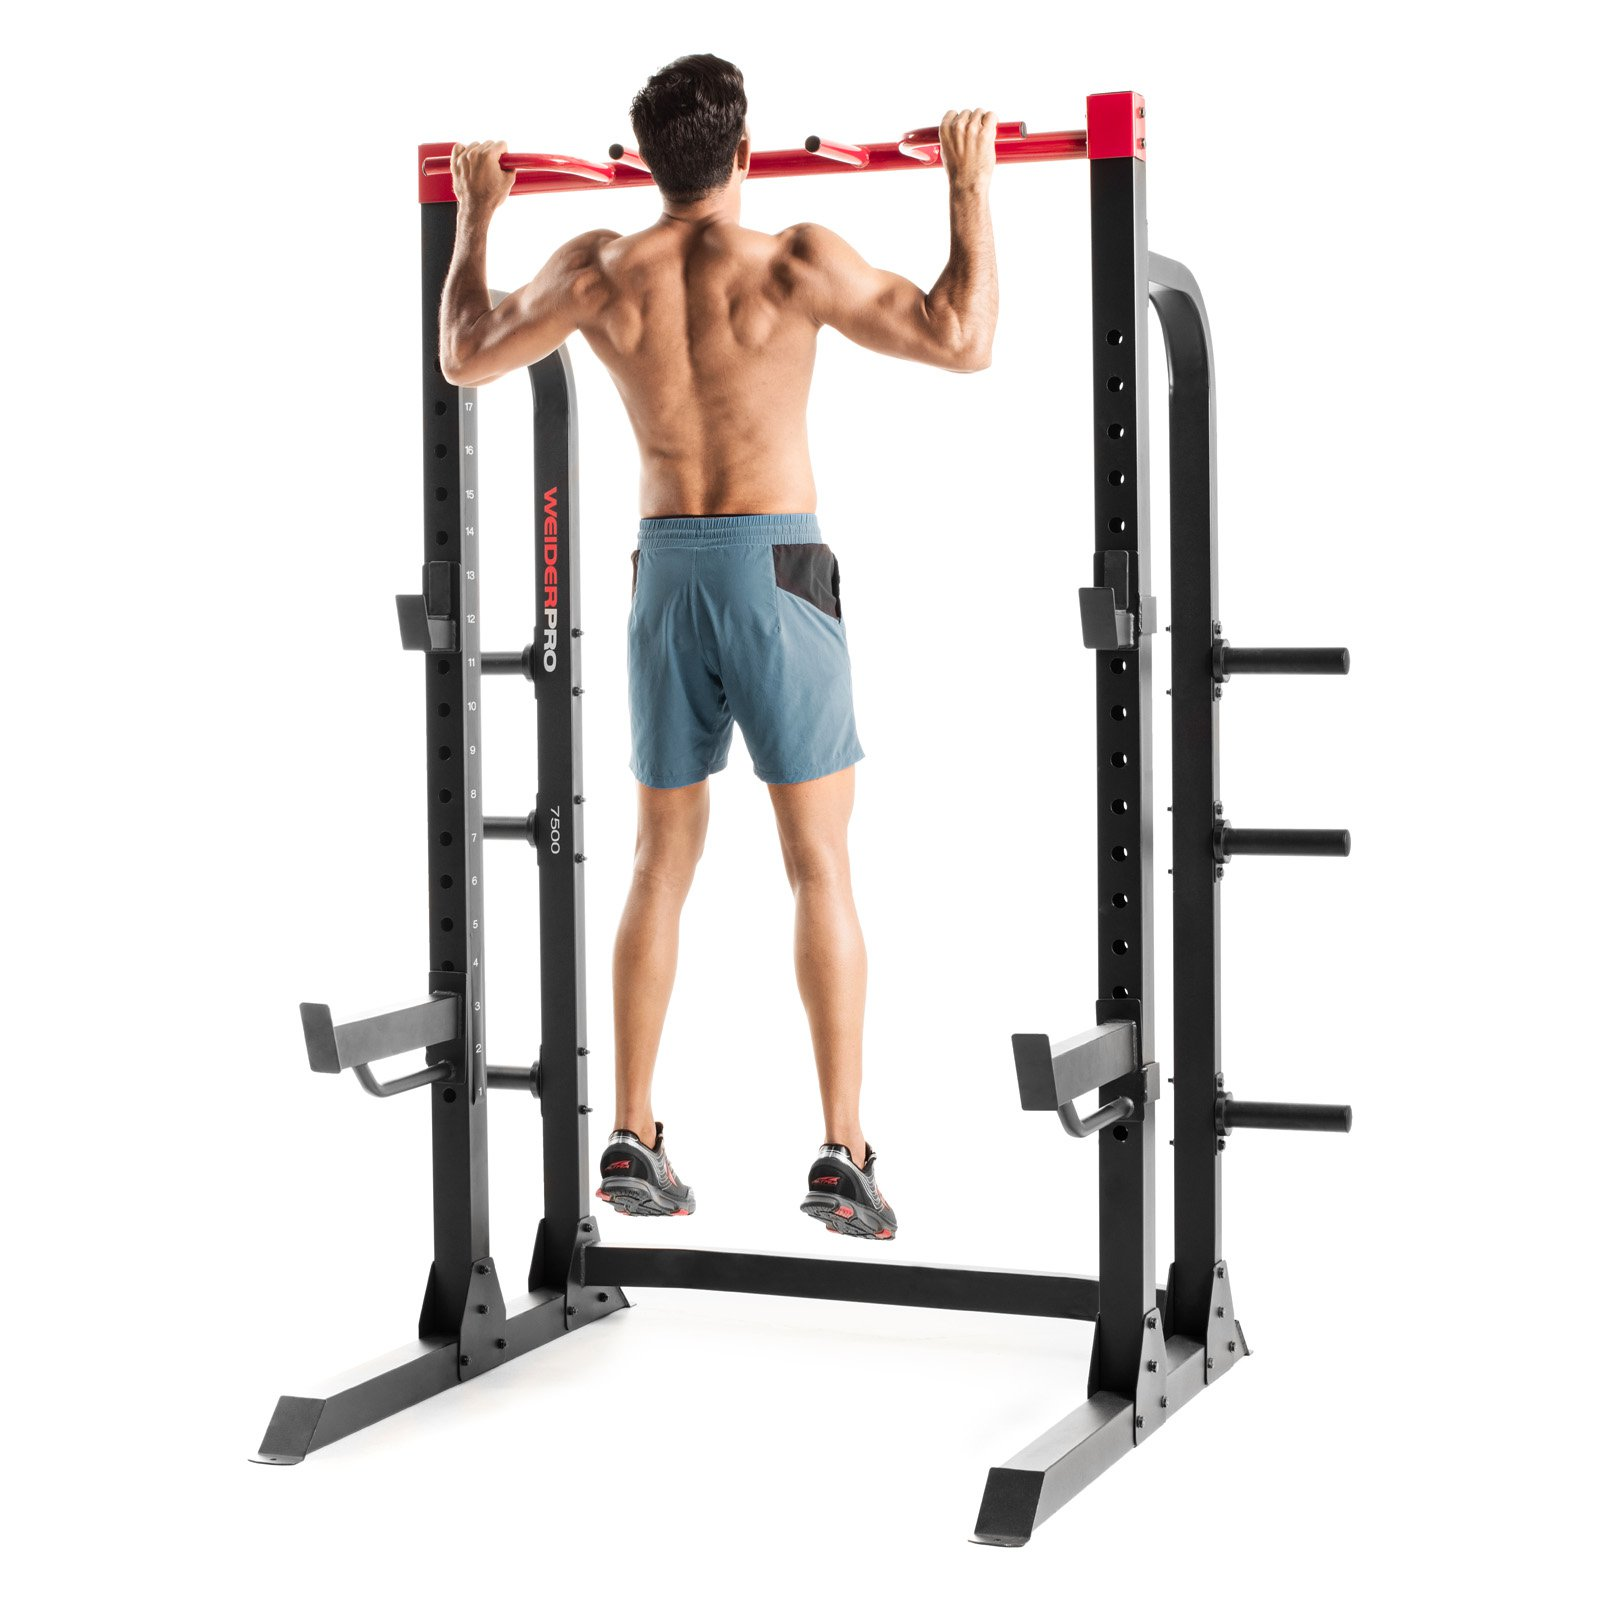 Weider Pro Power Rack Walmart